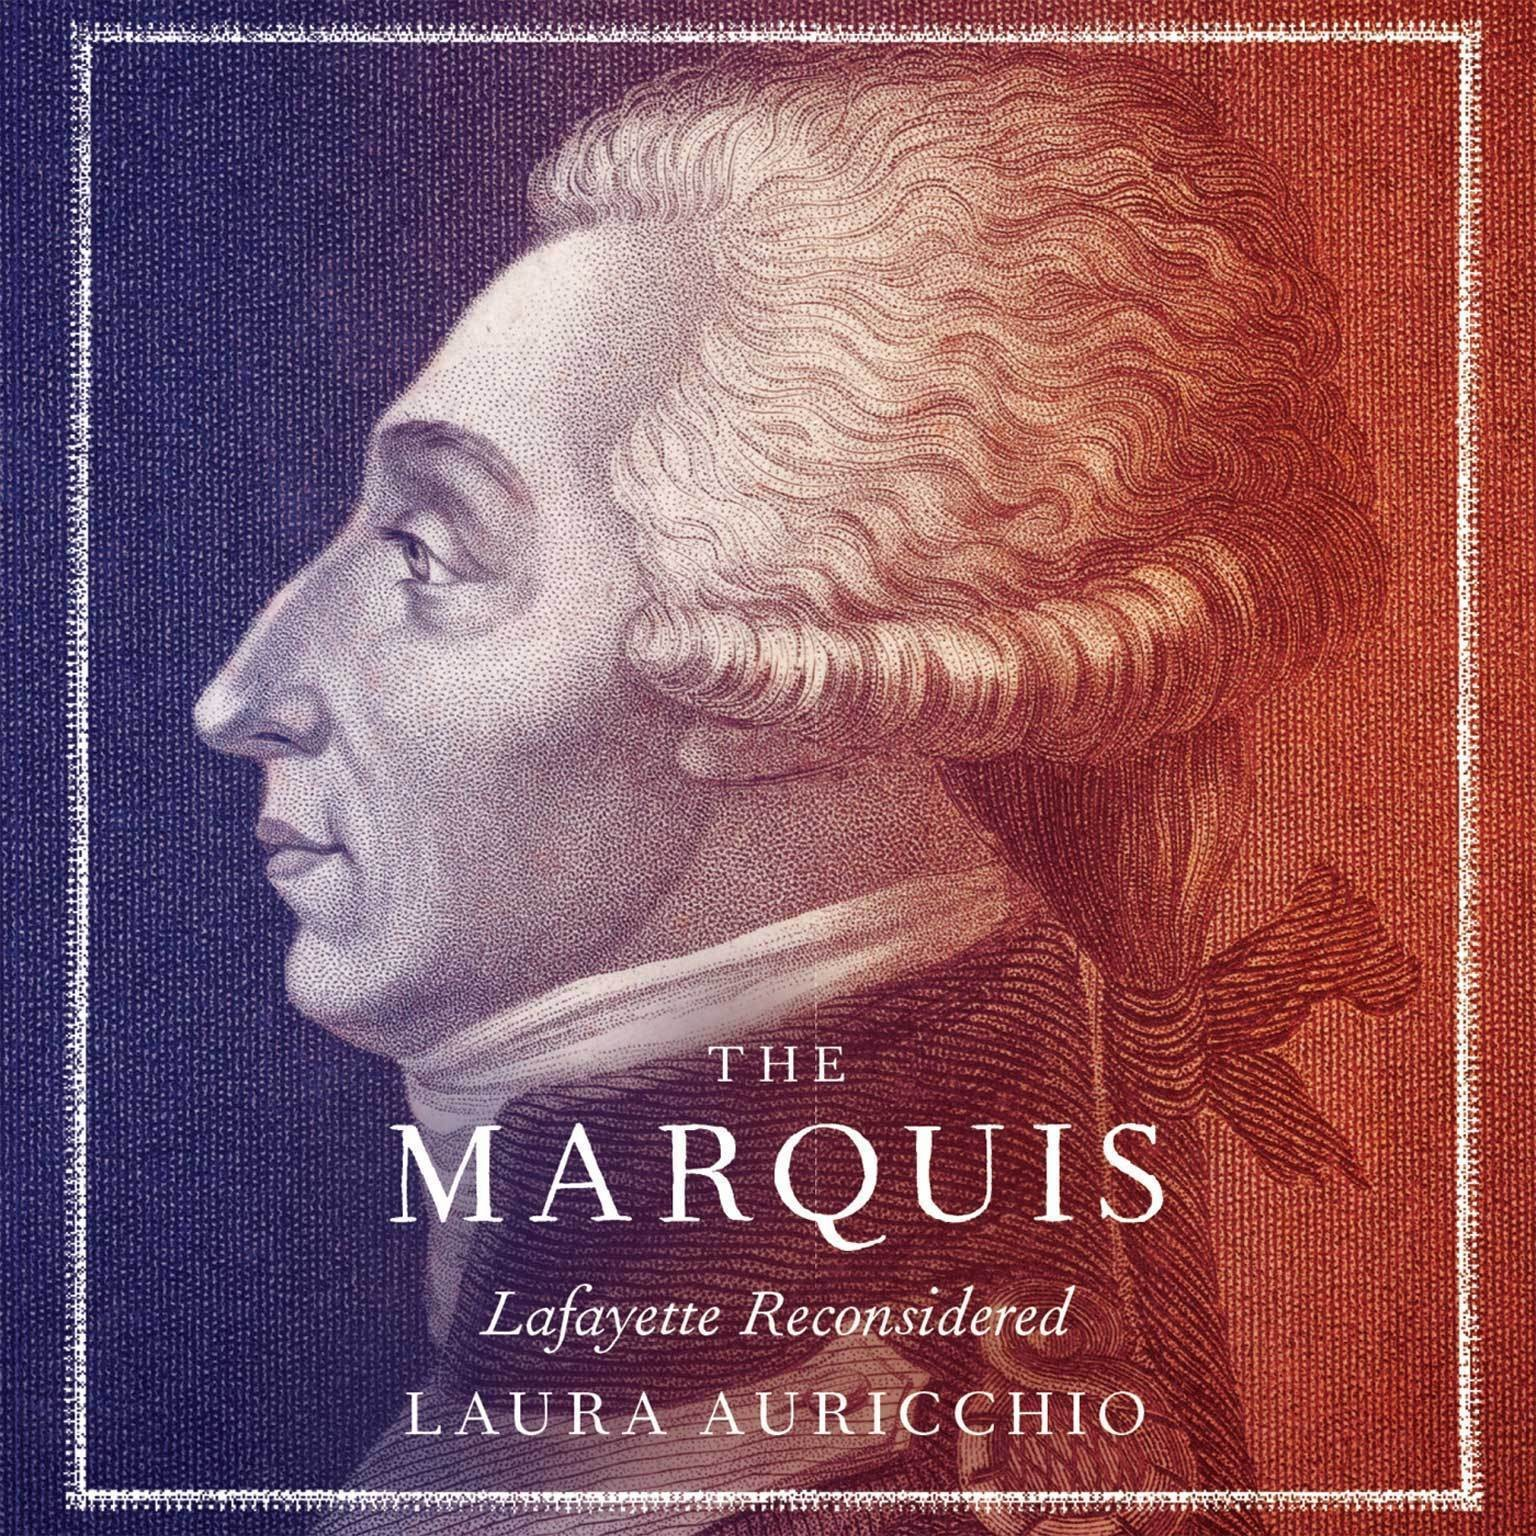 Printable The Marquis: Lafayette Reconsidered Audiobook Cover Art